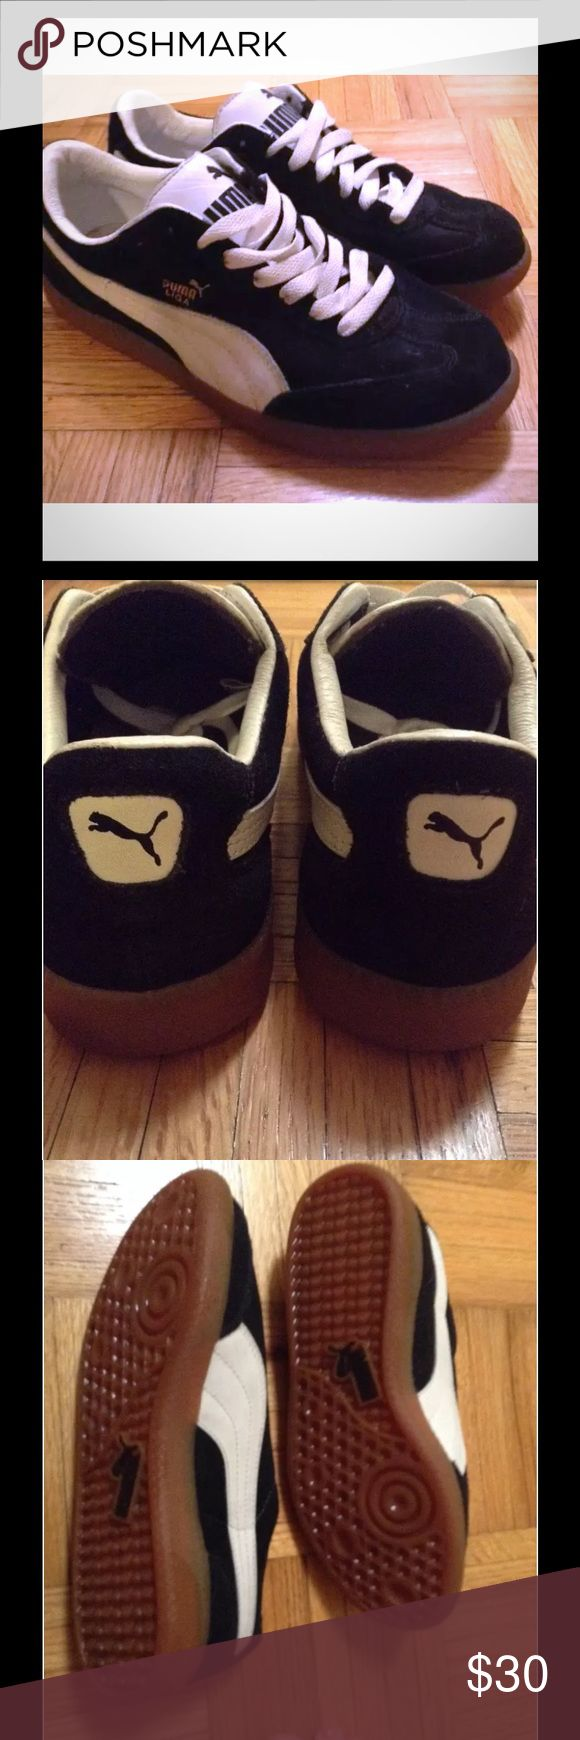 PUMA LIGA Size 4.5Y PUMA LIGA Size 4.5Y (also fits women approximately size 6-6.5) Excellent condition. Orig $80 Puma Shoes Sneakers